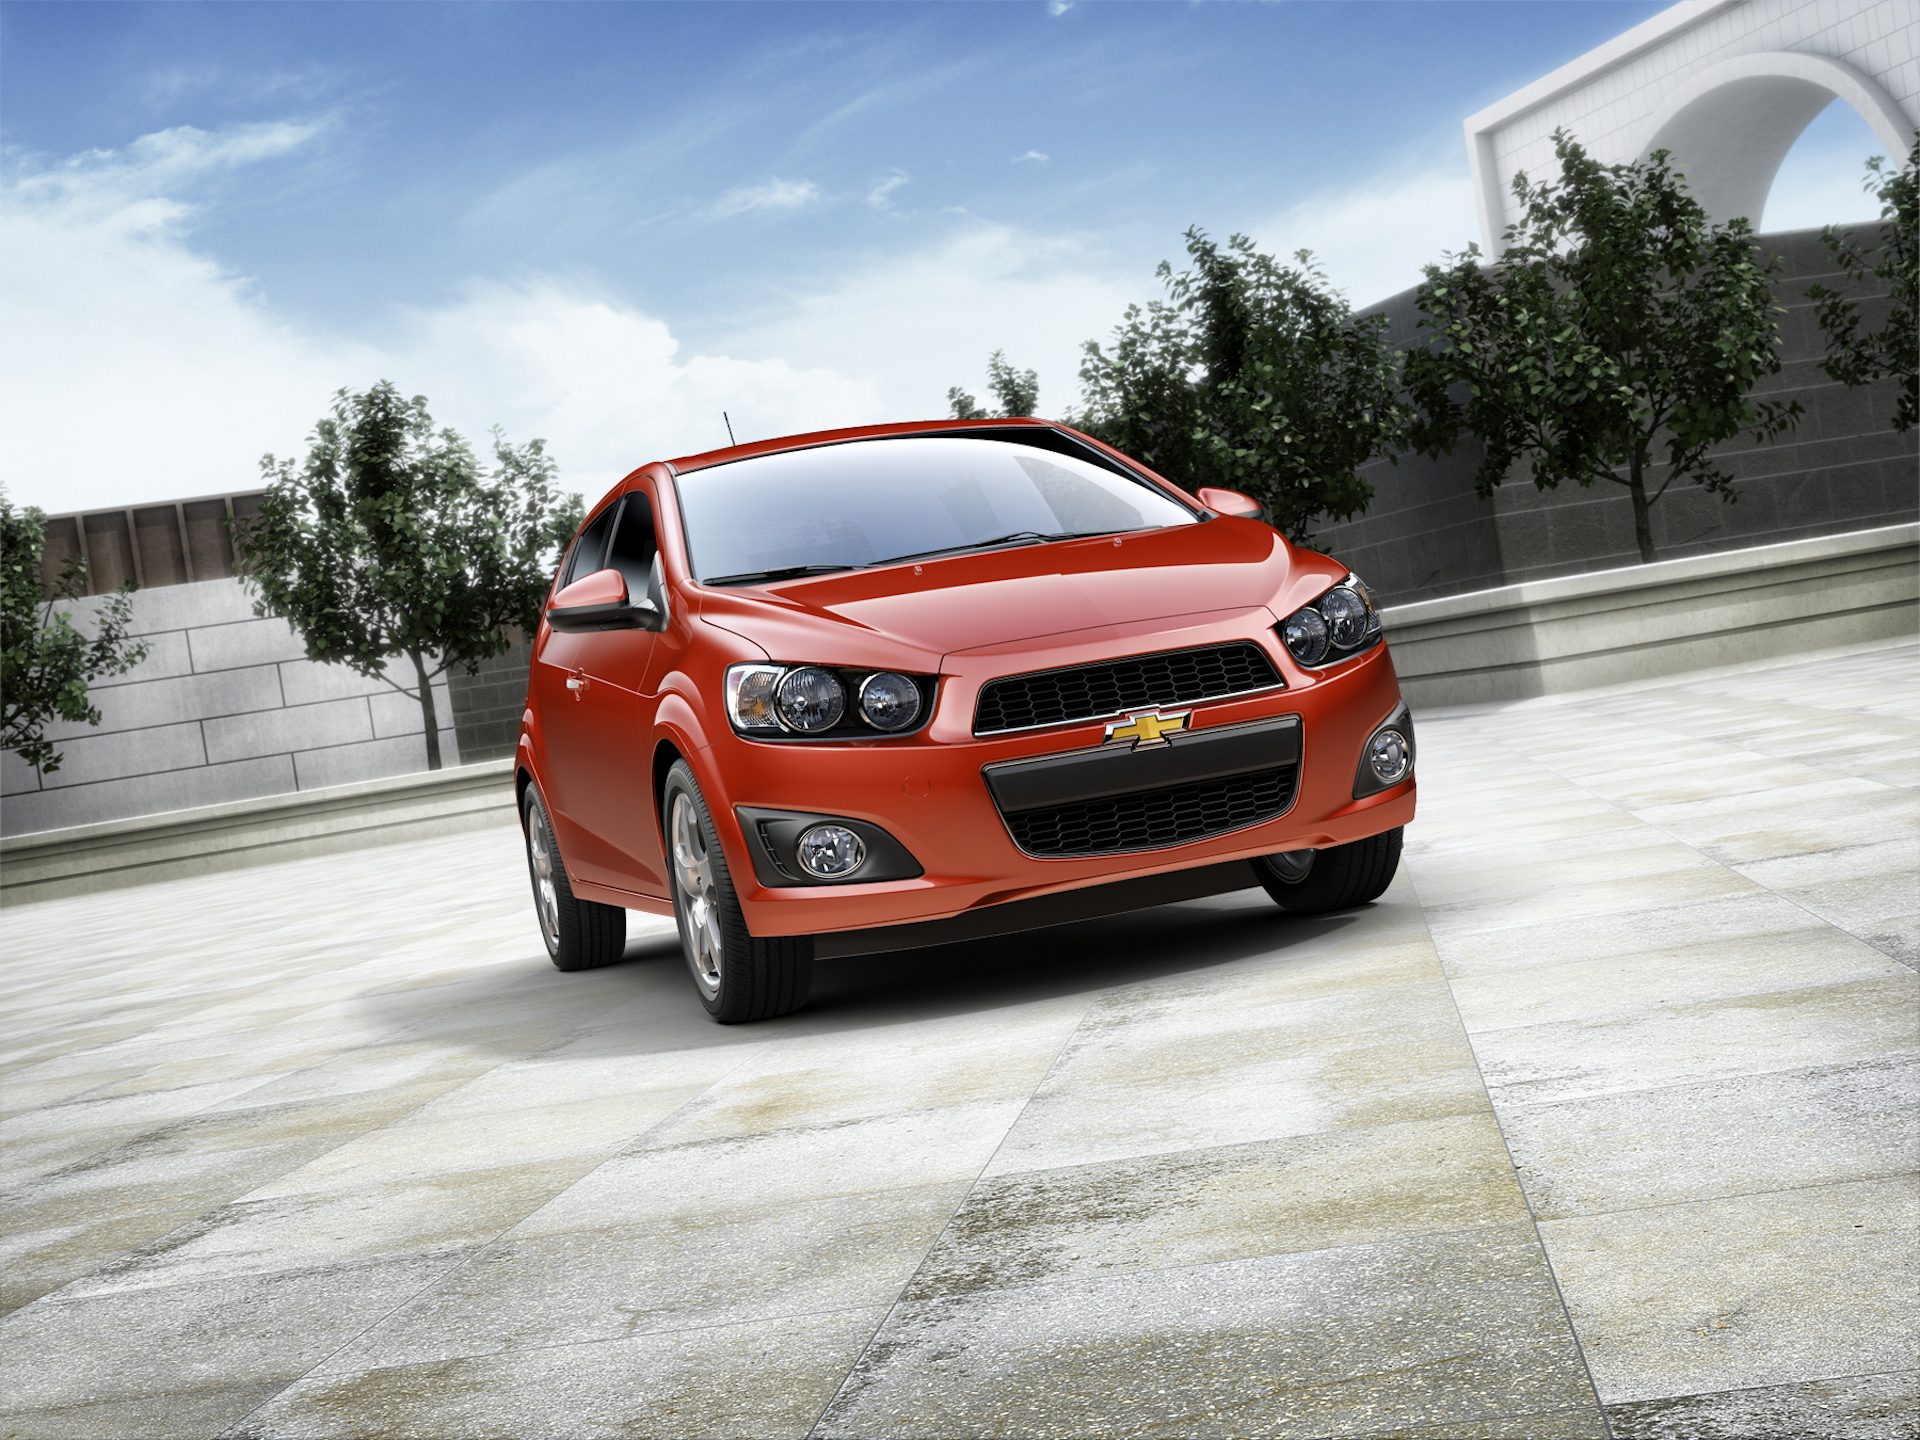 Chevrolet Sonic Owners Manual: Recreational Vehicle Towing